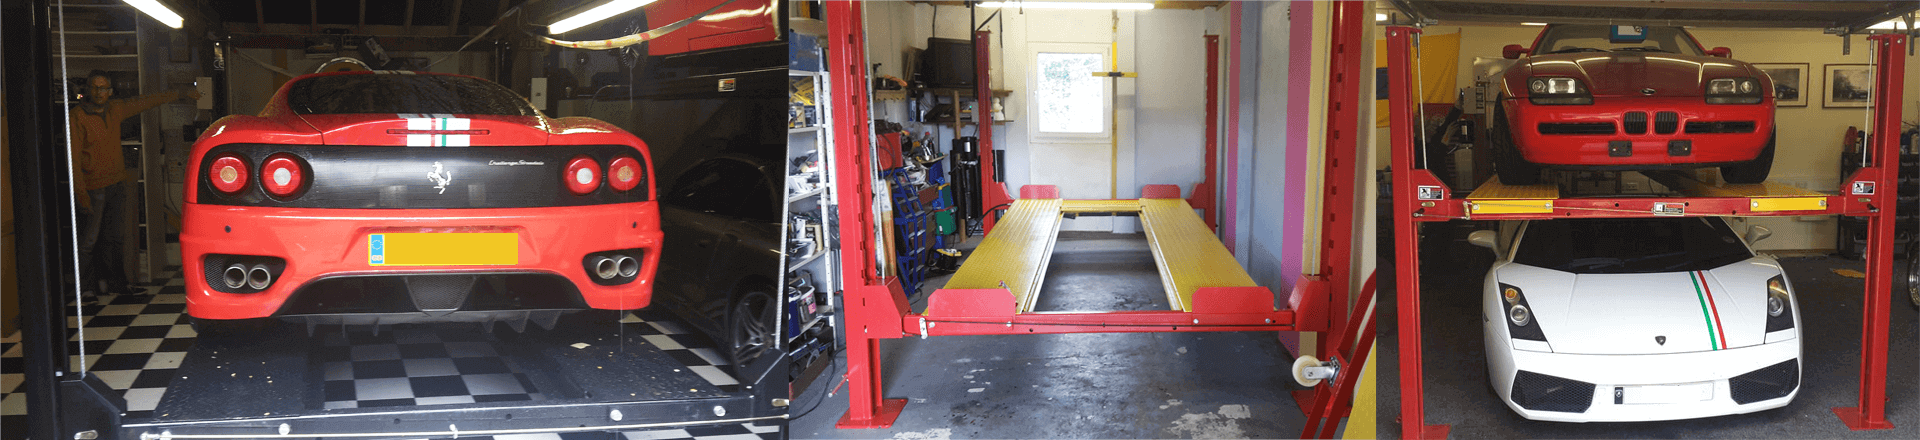 Classic Car Storage with Parking Lifts